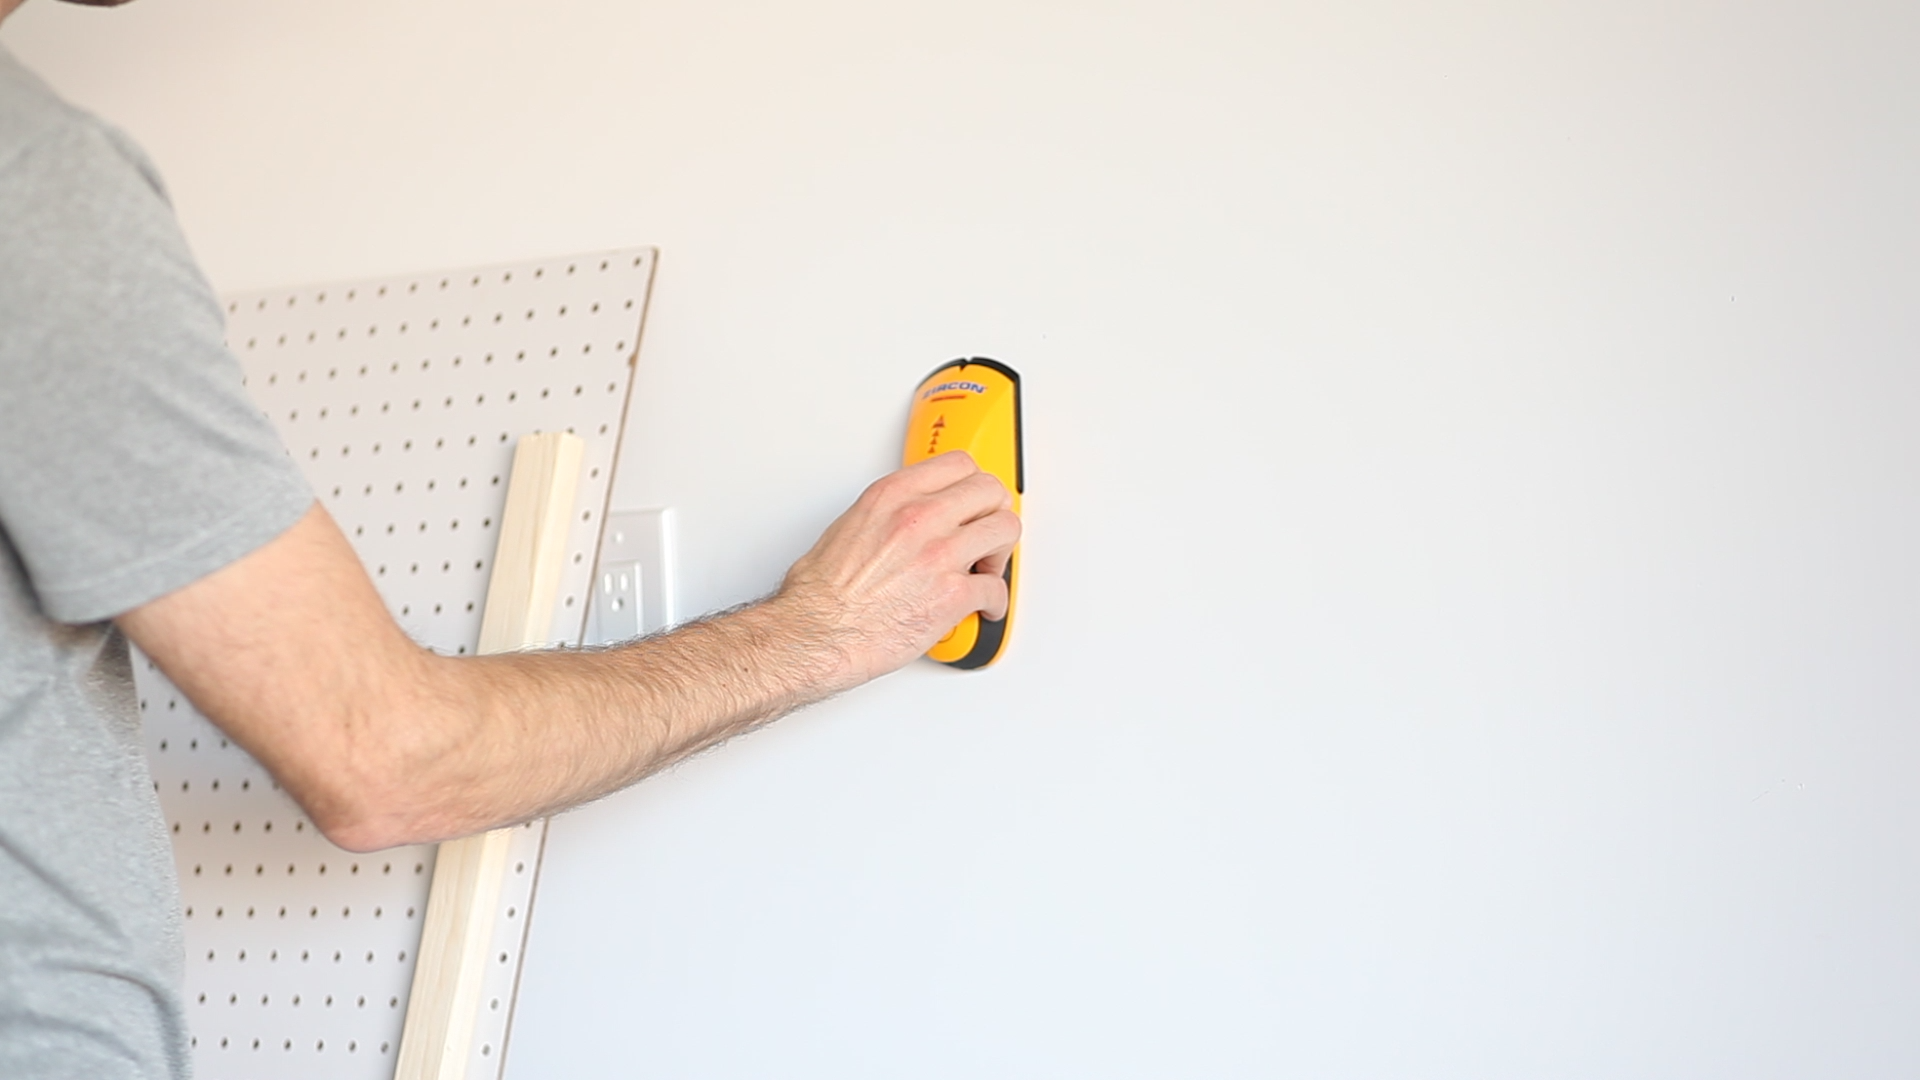 How to organize tools with a garage pegboard life storage blog find and mark studs yellow stud finder solutioingenieria Images